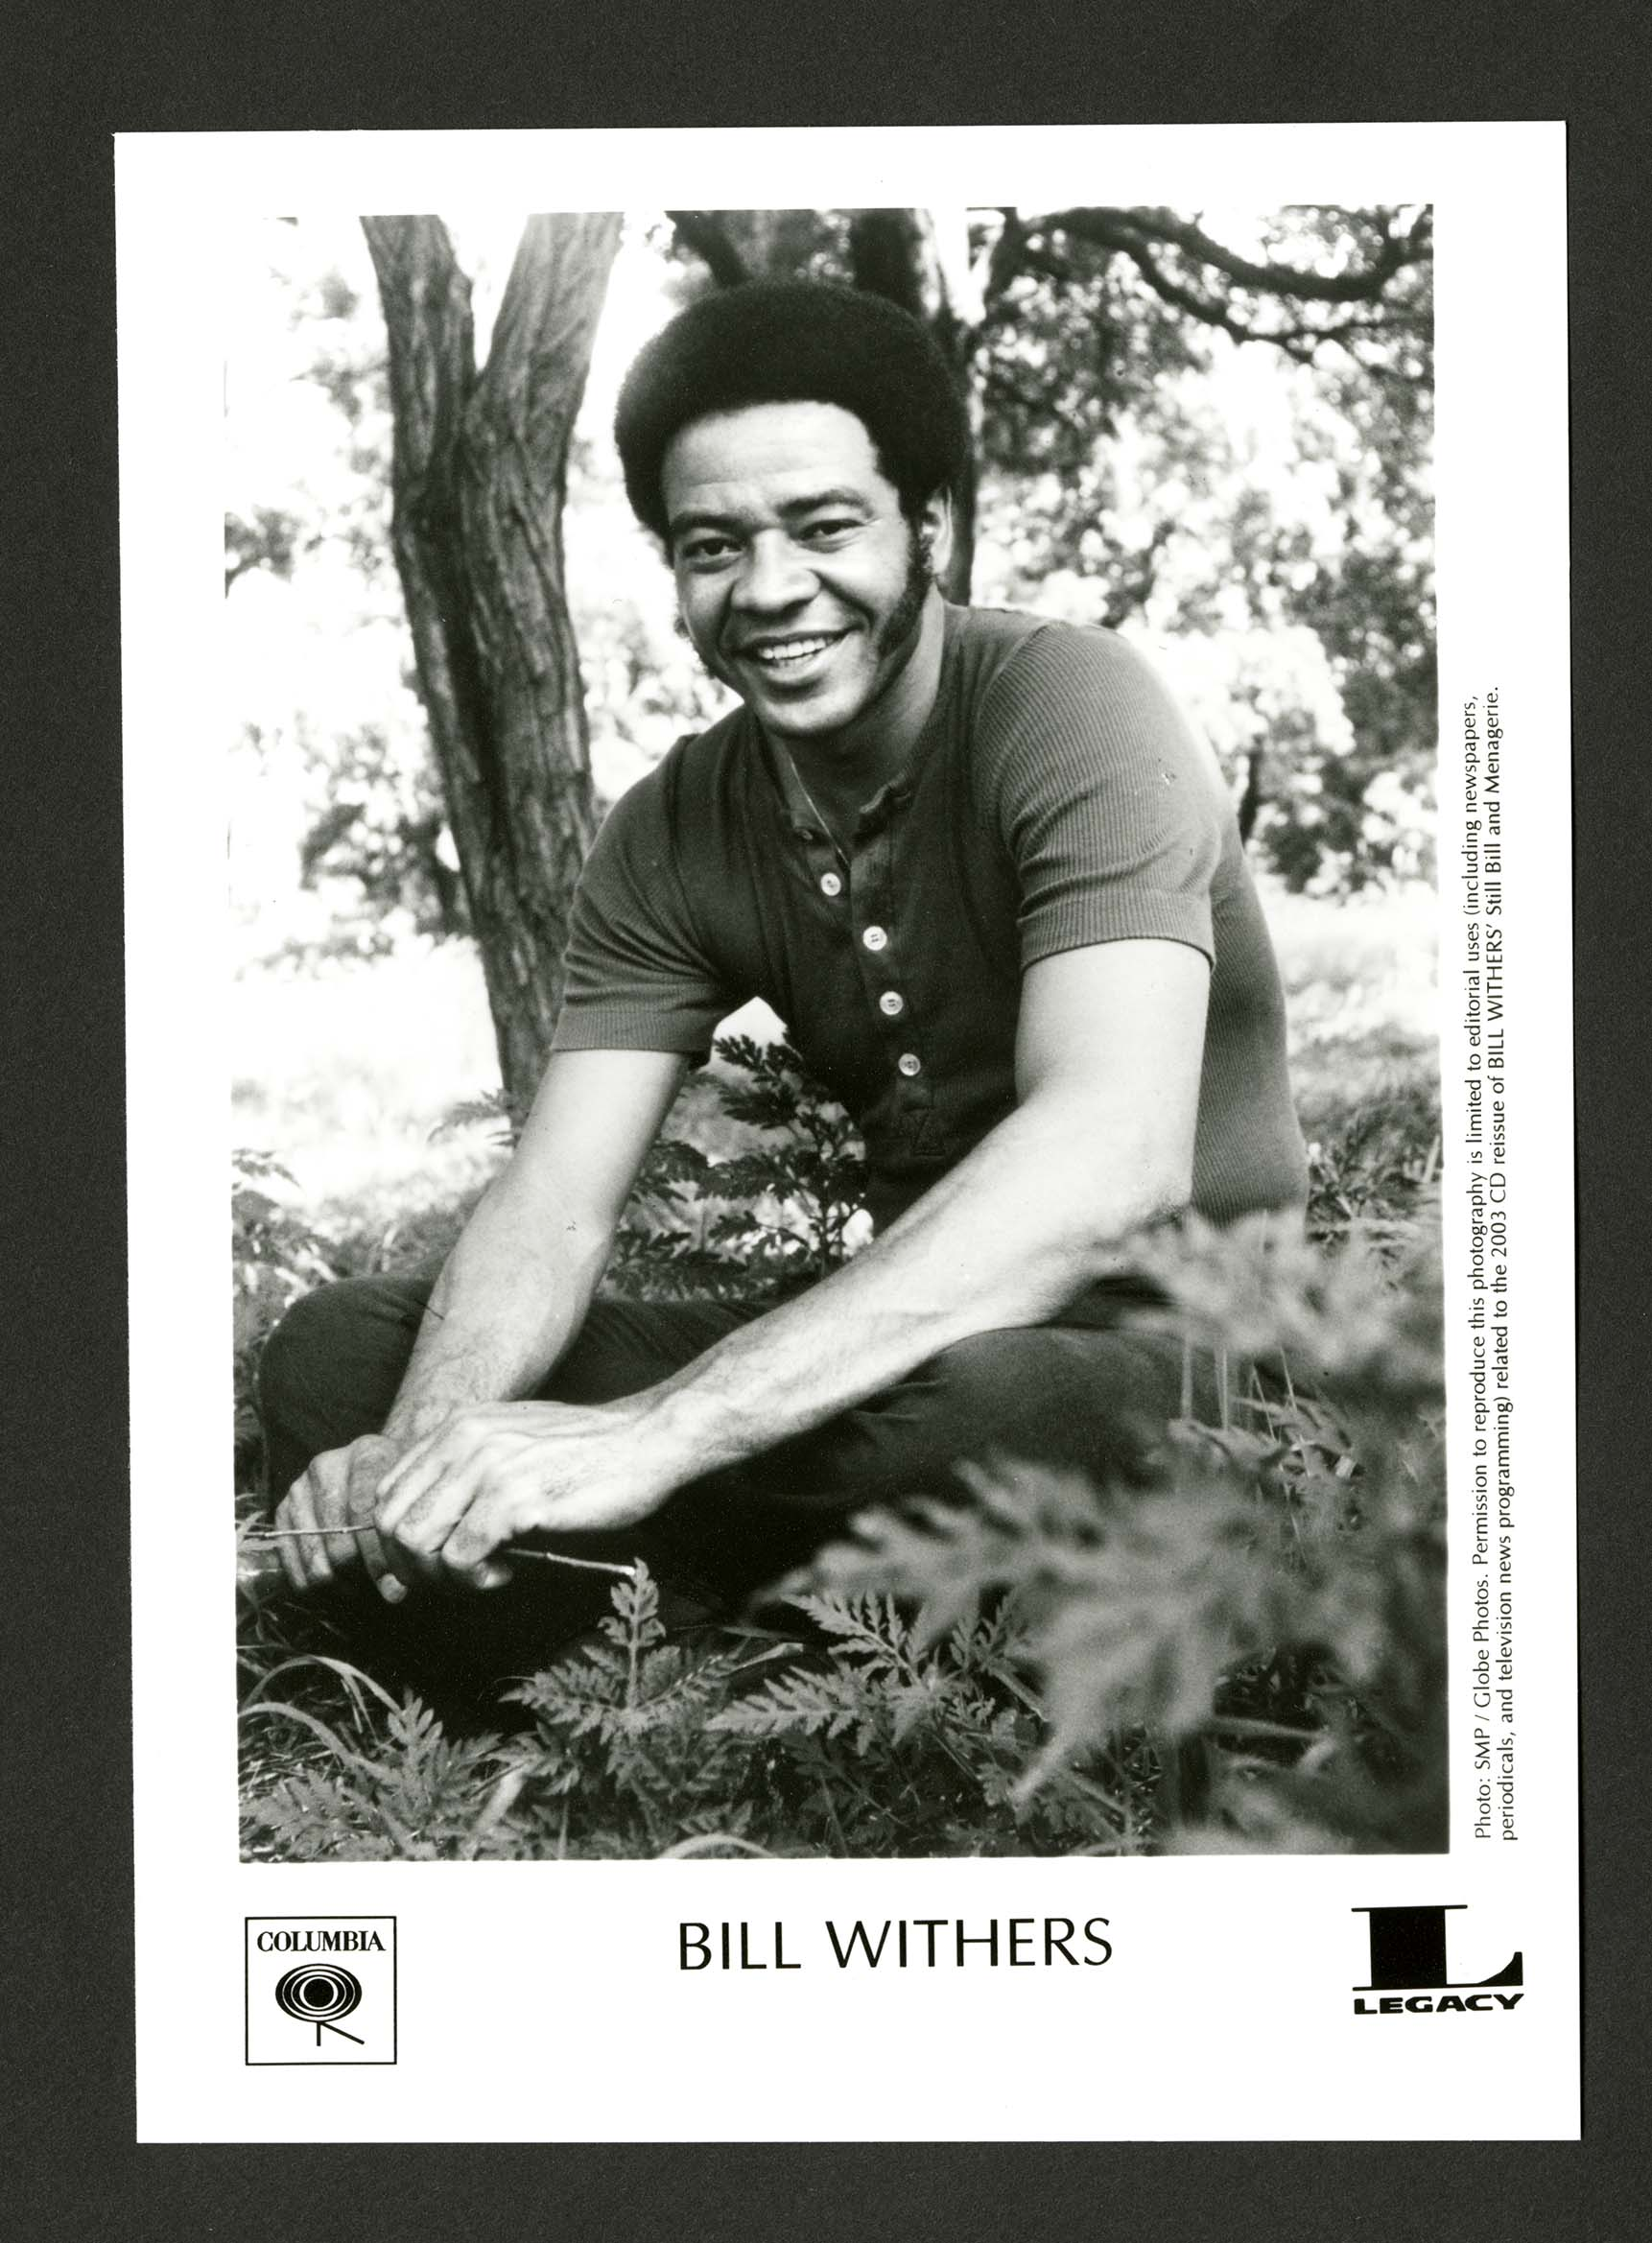 Bill Withers promo photo